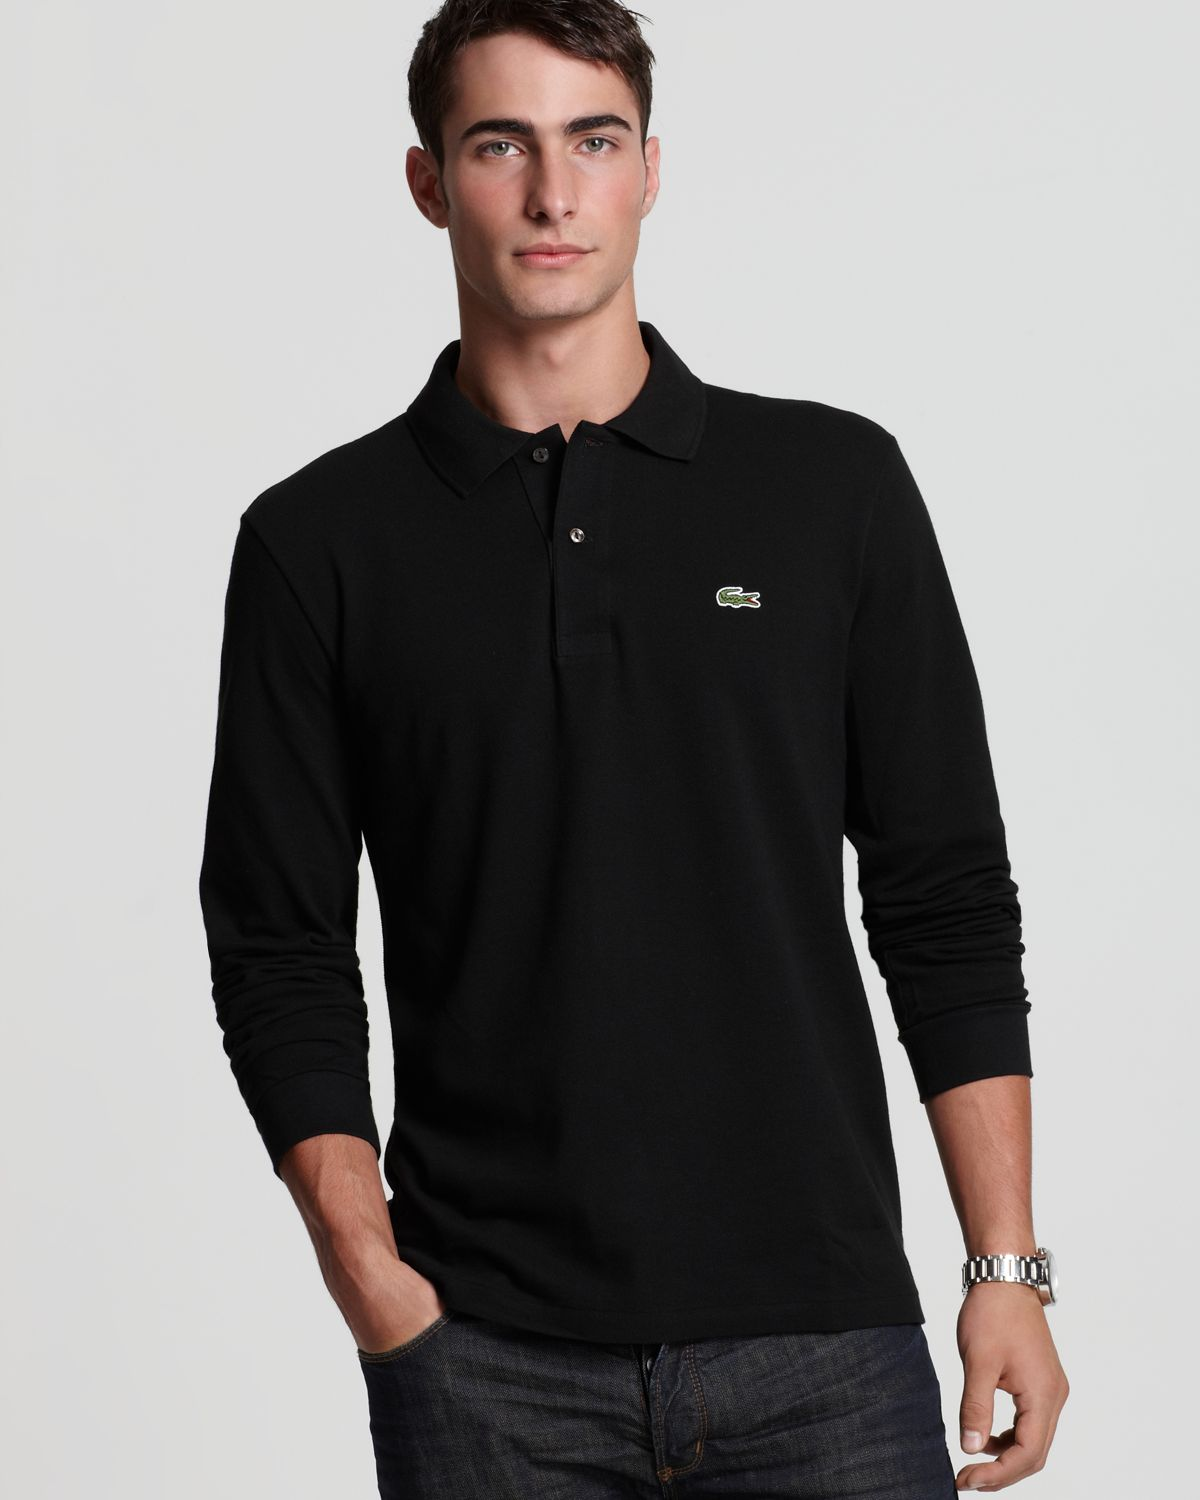 5b3d509af70e6 ... lacoste black long sleeve classic fit pique polo product